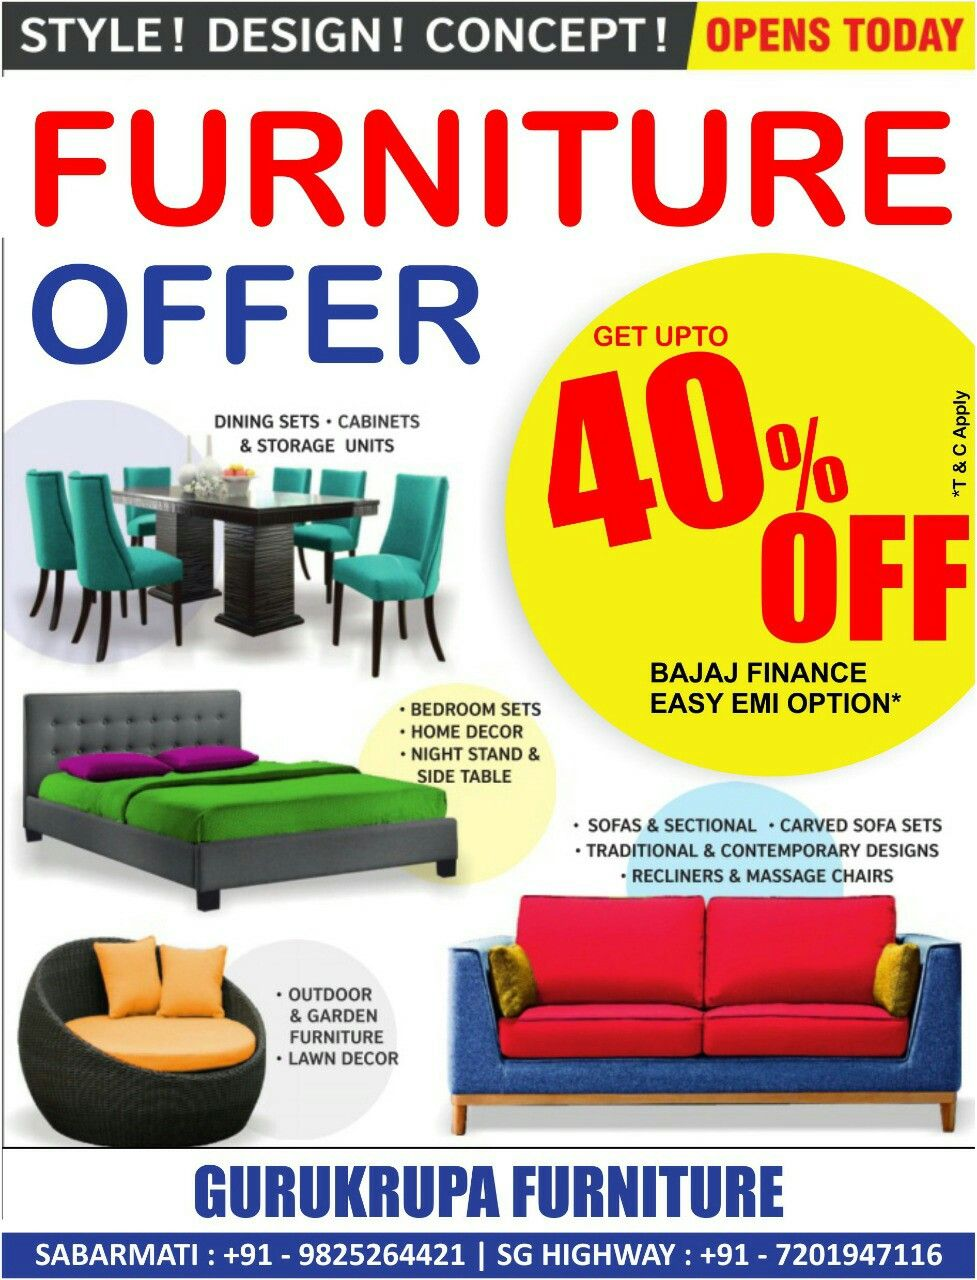 Get Upto 40 Off Easy Emi Available Visitus Gurukrupa Furniture Ahmedabad Sabarmati 9825264421 Sg Highway Carved Sofa Dining Storage Furniture Offers